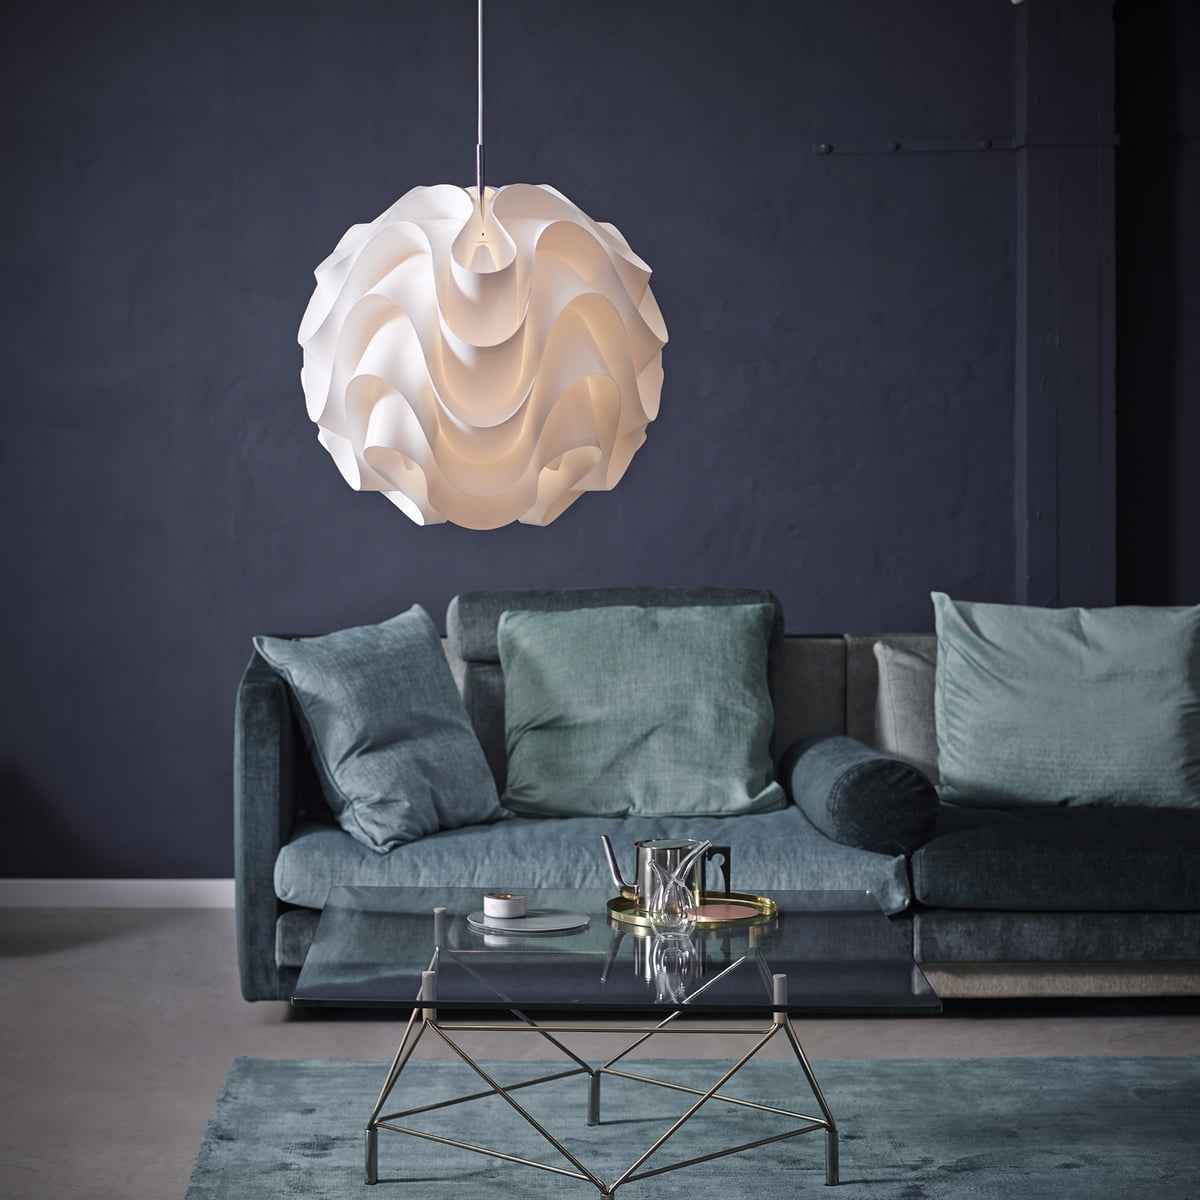 Buy the sinus pendant lamp from le klint le klint sinus 172 pendant lamp mozeypictures Gallery